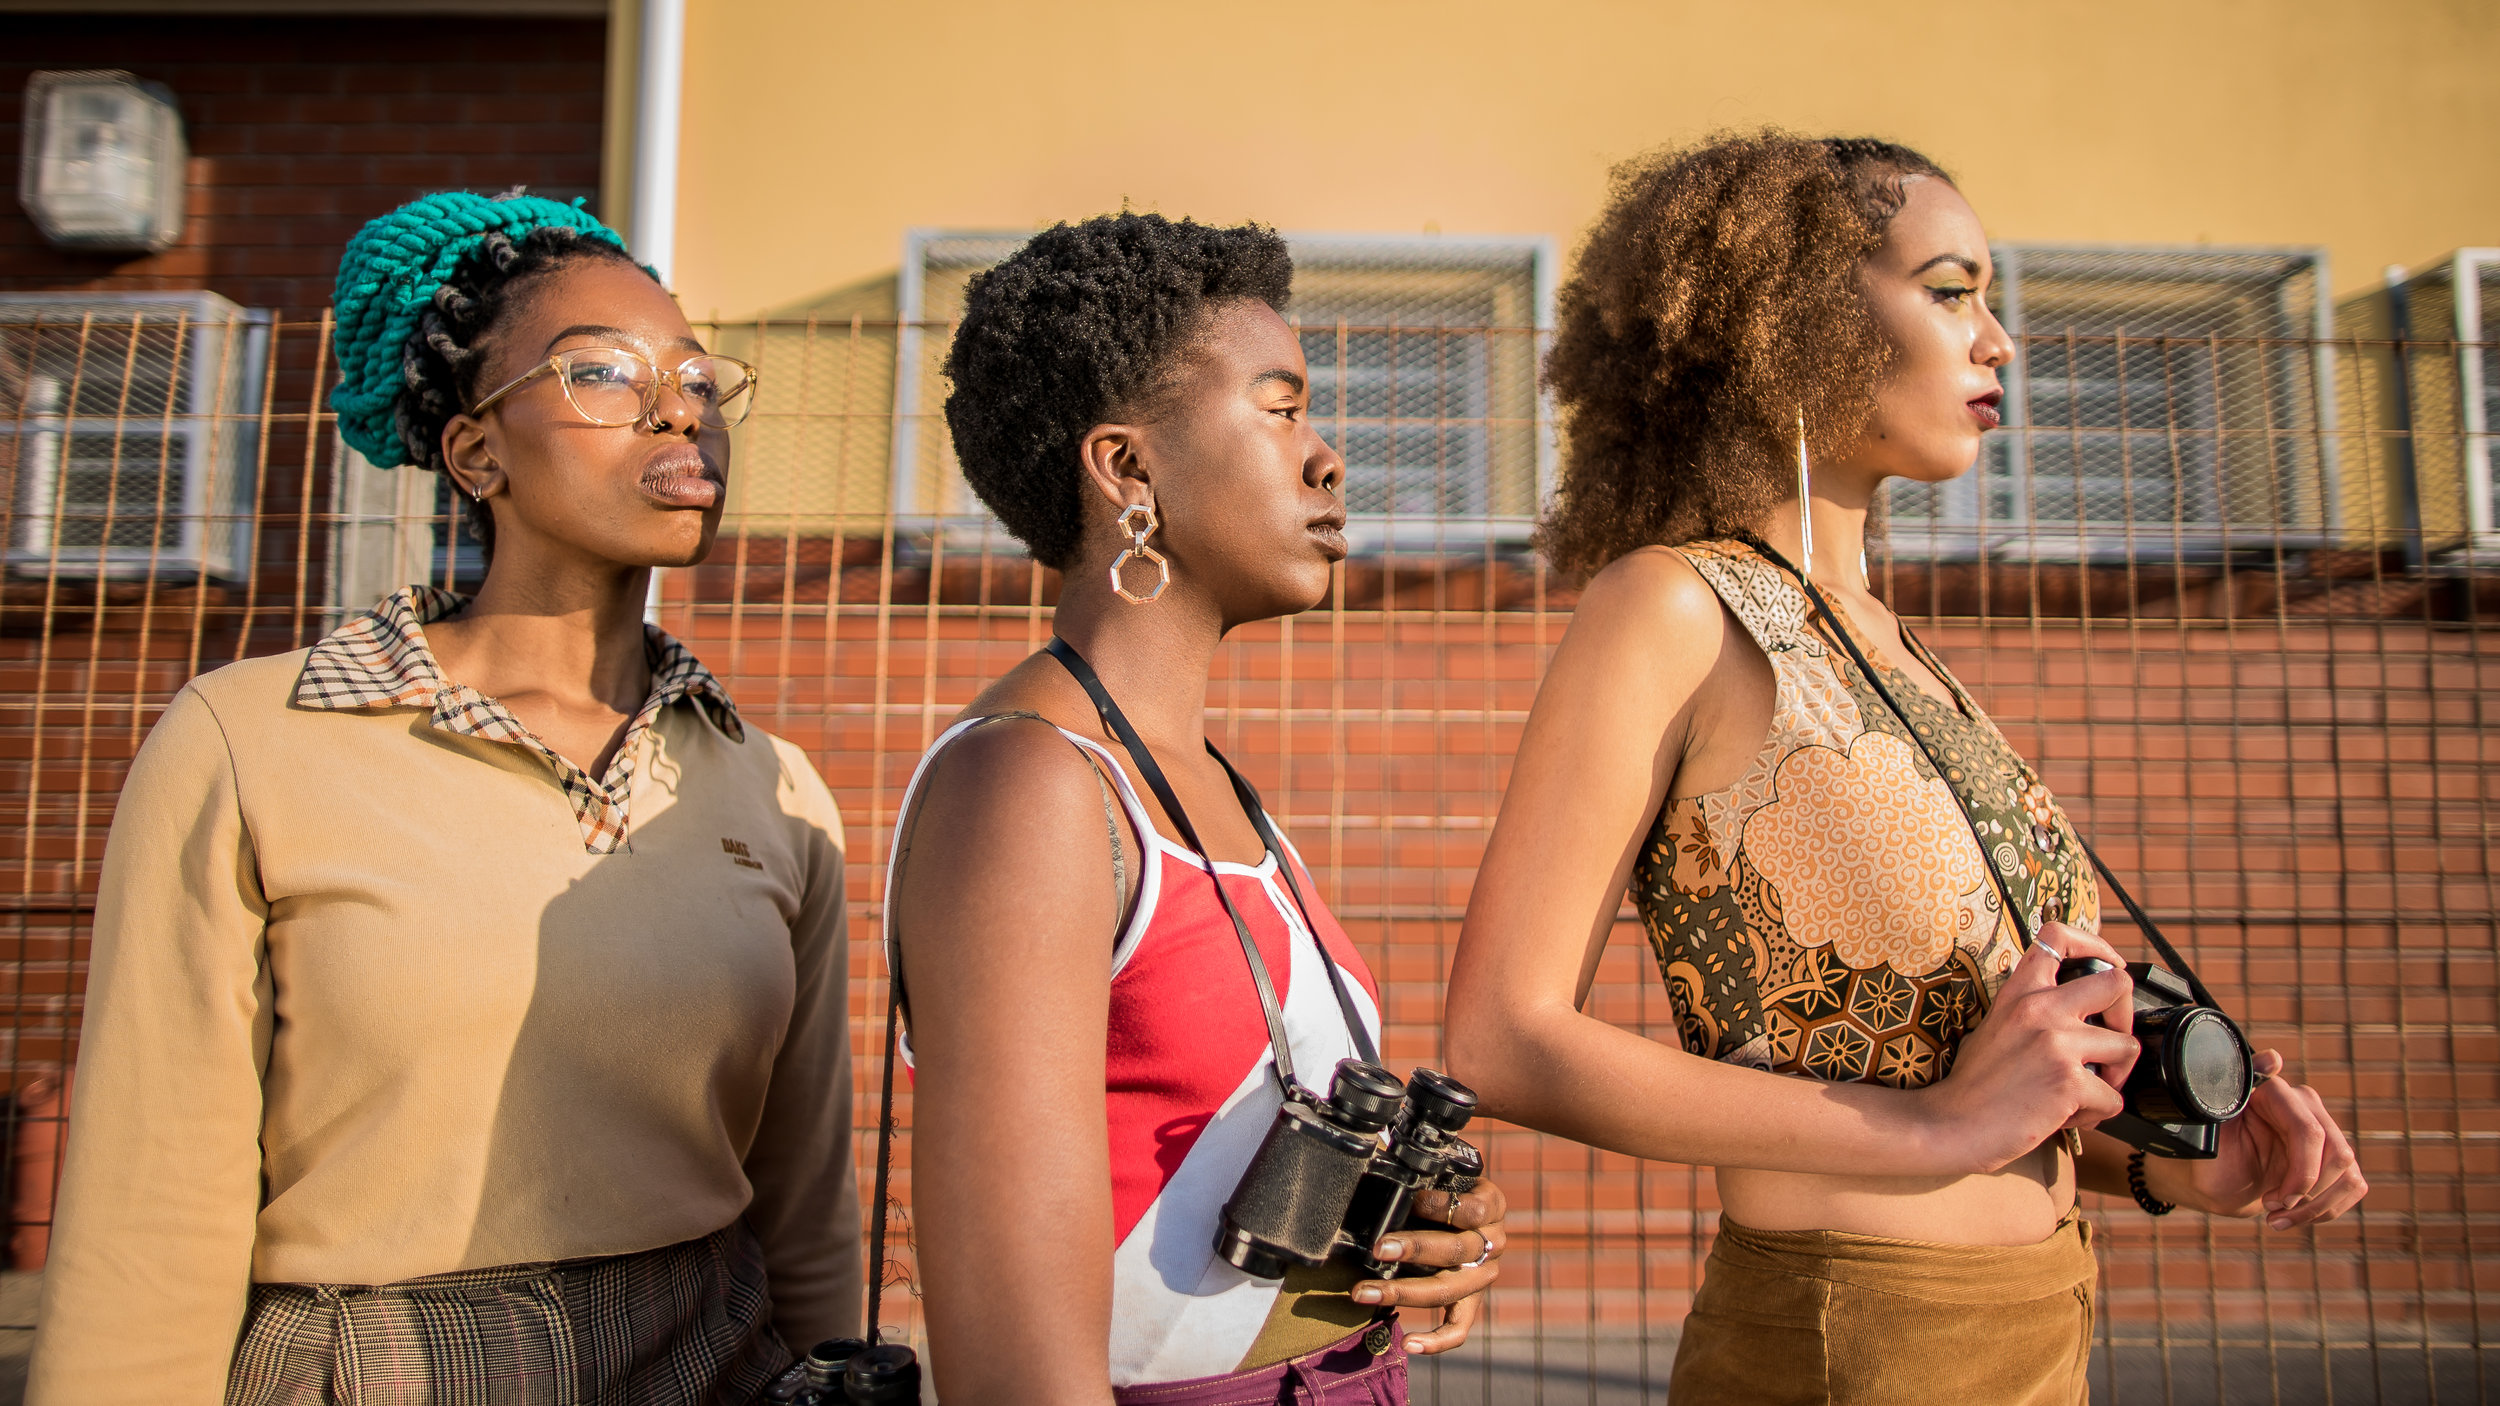 'The Foxy Five' is a Radical Web Series About Intersectional Feminism